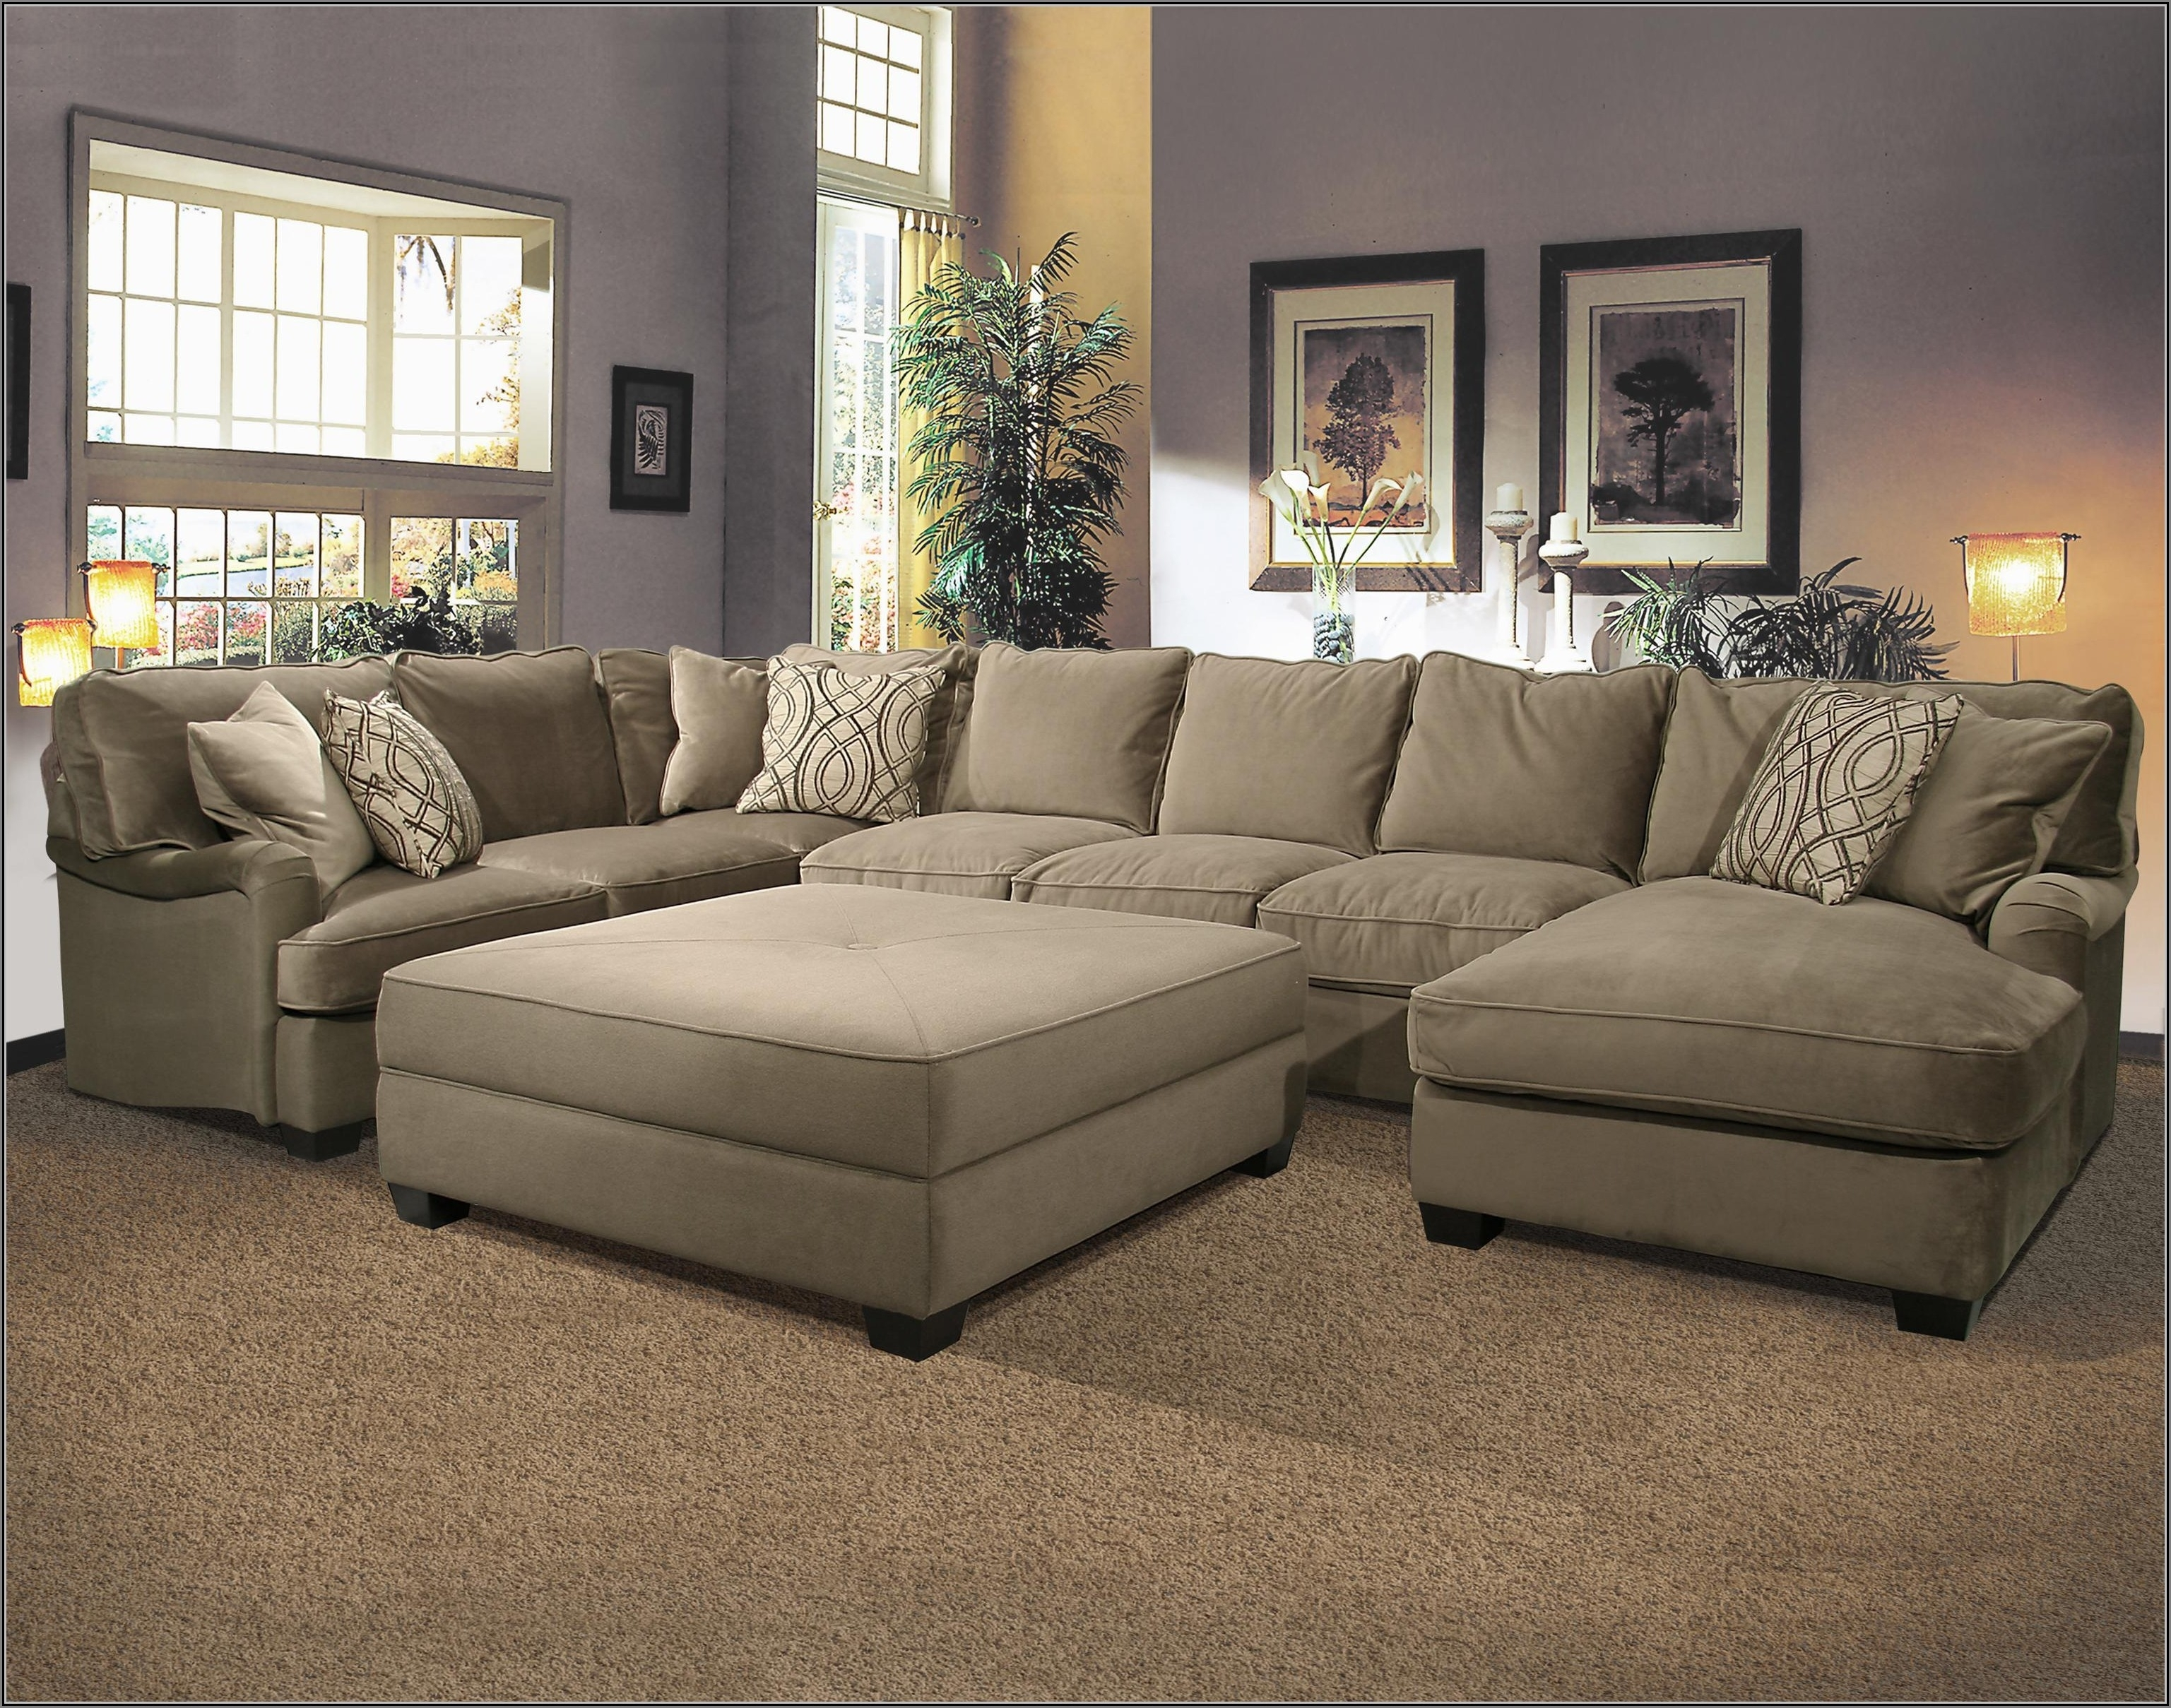 Sectional Sofa With Large Ottoman Hotelsbacau Com Intended For in Sectionals With Ottoman (Image 13 of 15)